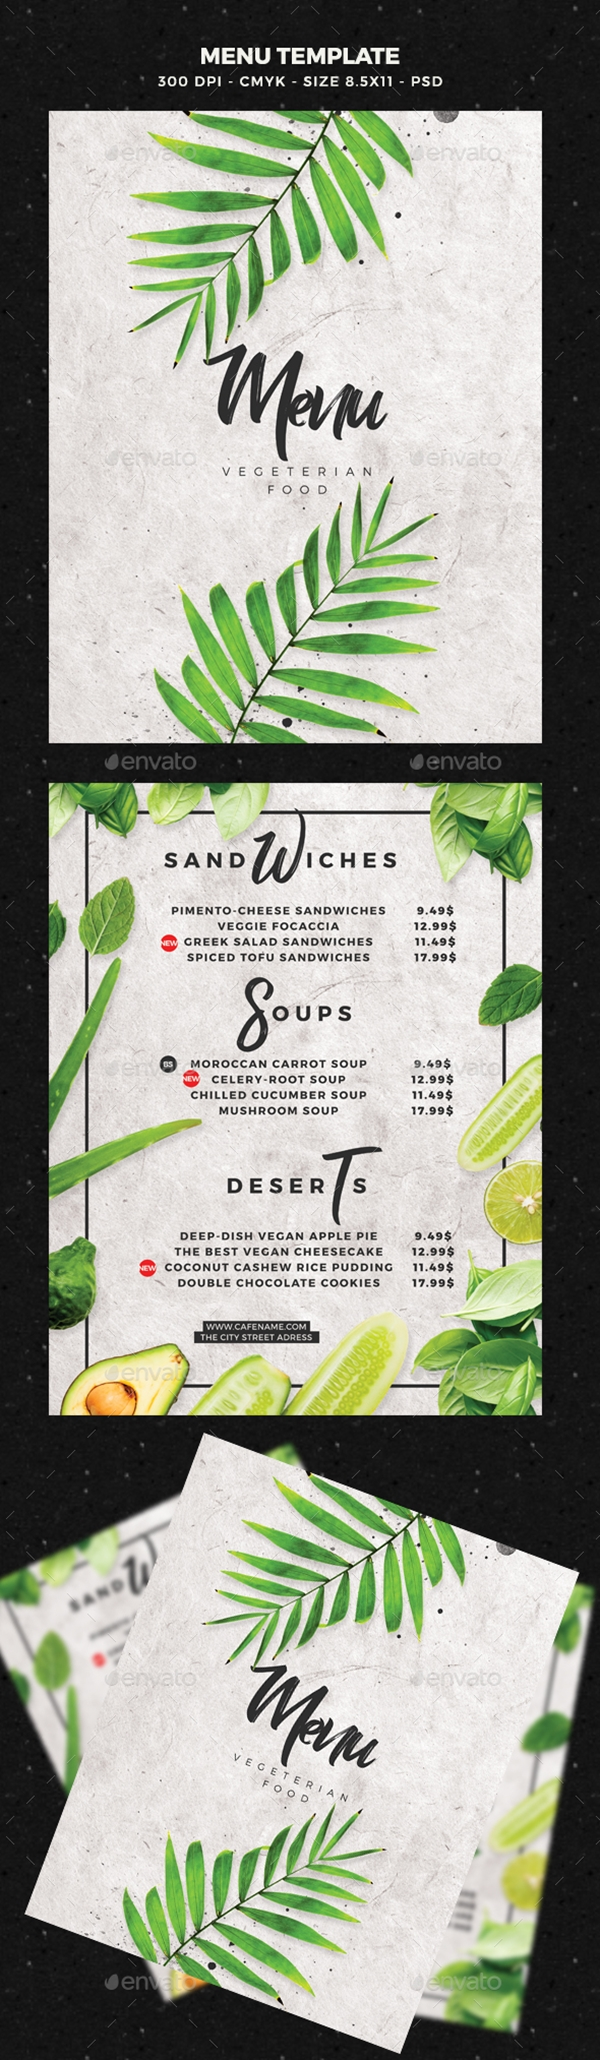 restaurant menu design 16